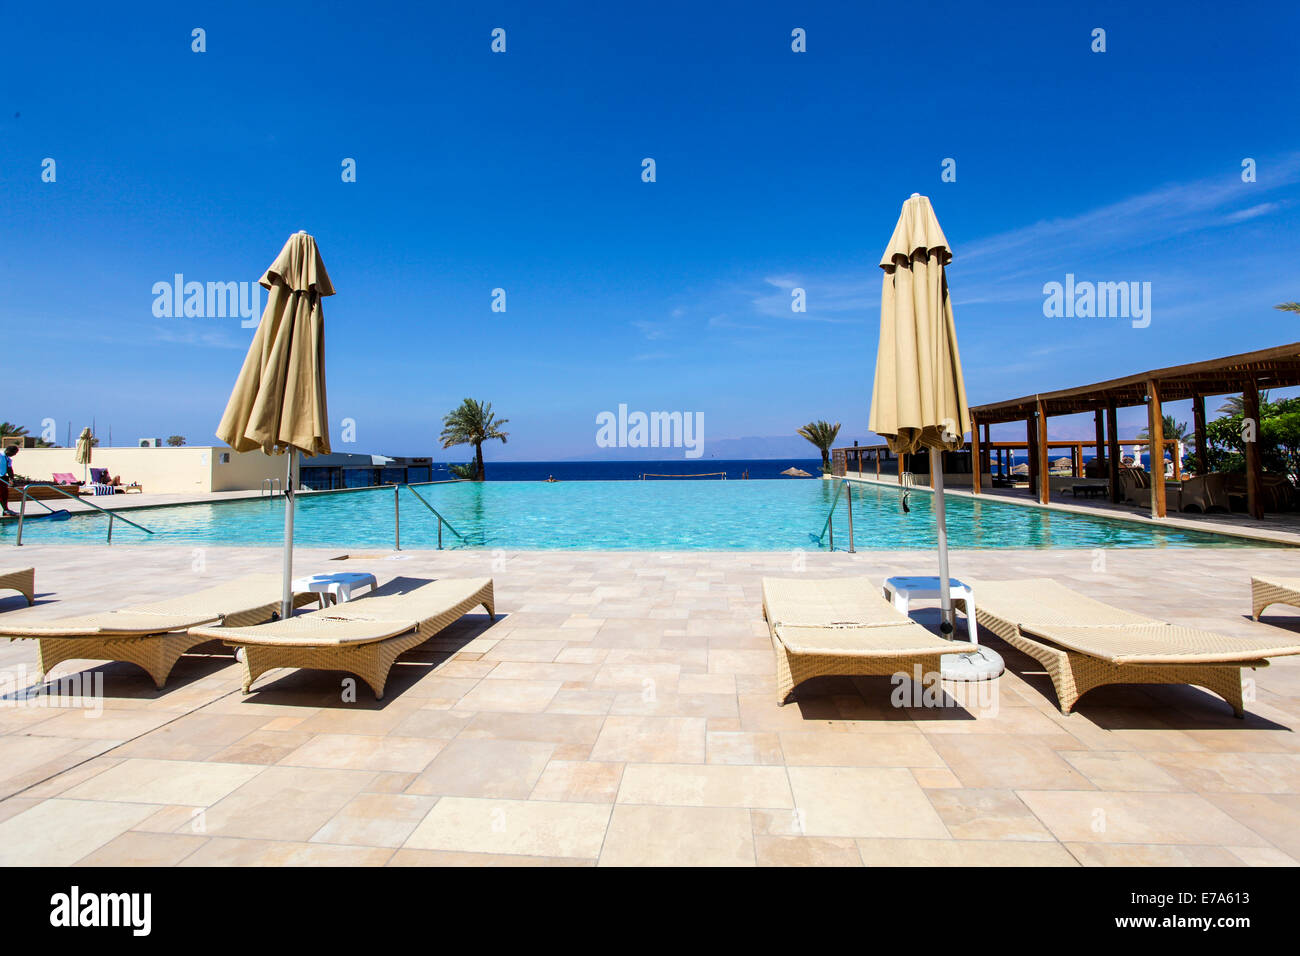 Tala Bay, Aqaba, Jordan. Luxury Beach Resort - Stock Image